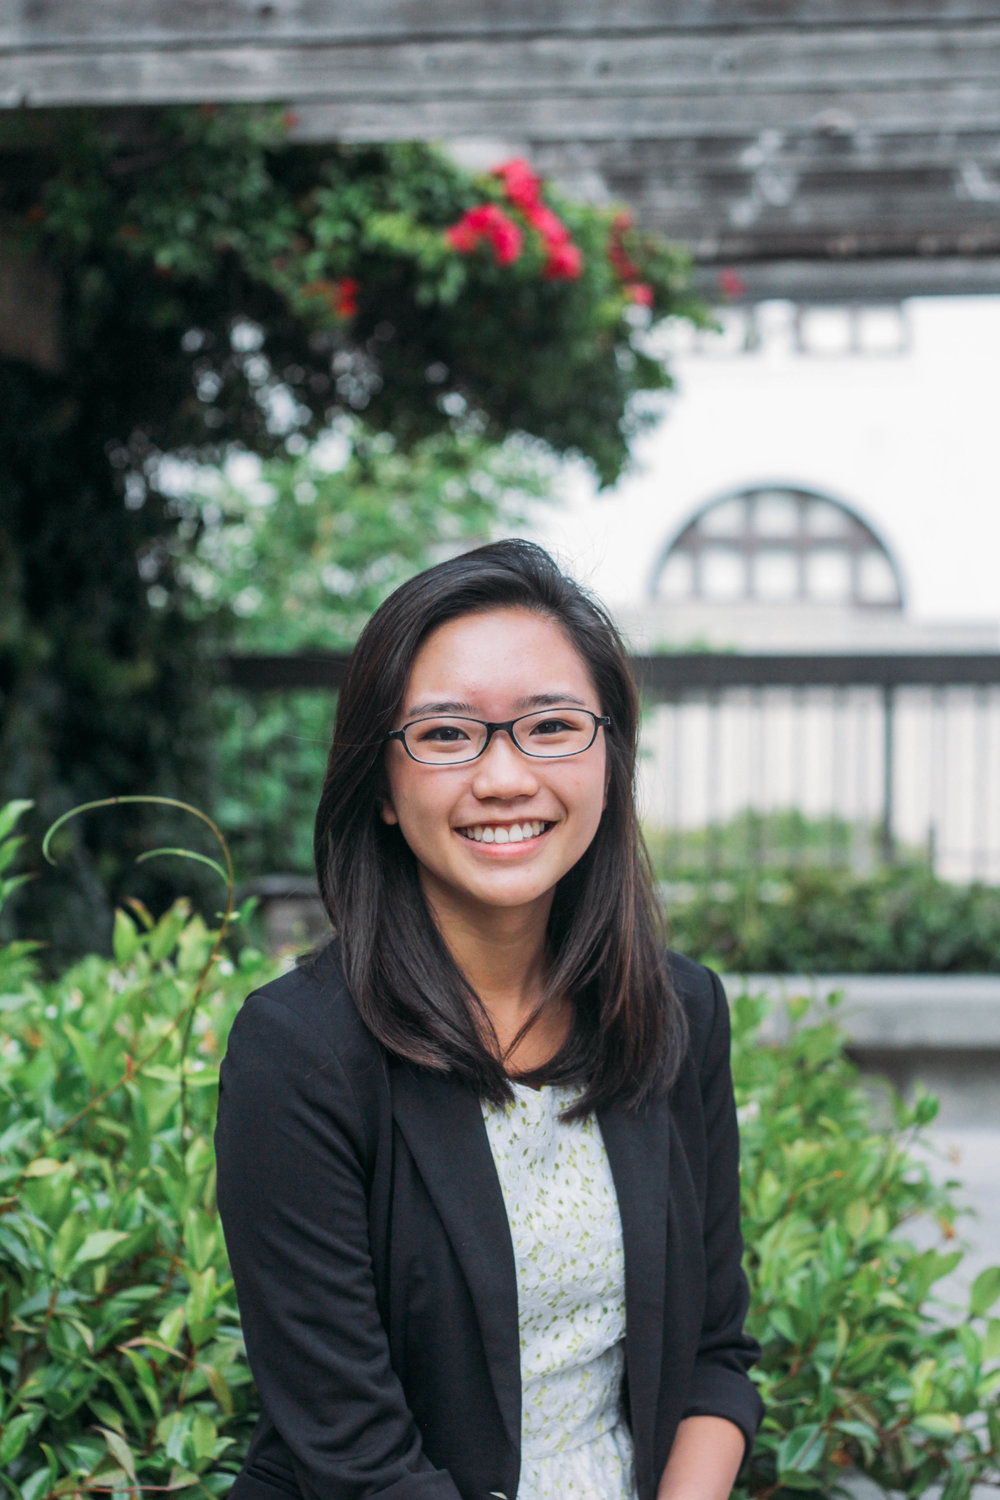 Vice President of Operations: Helen Lee